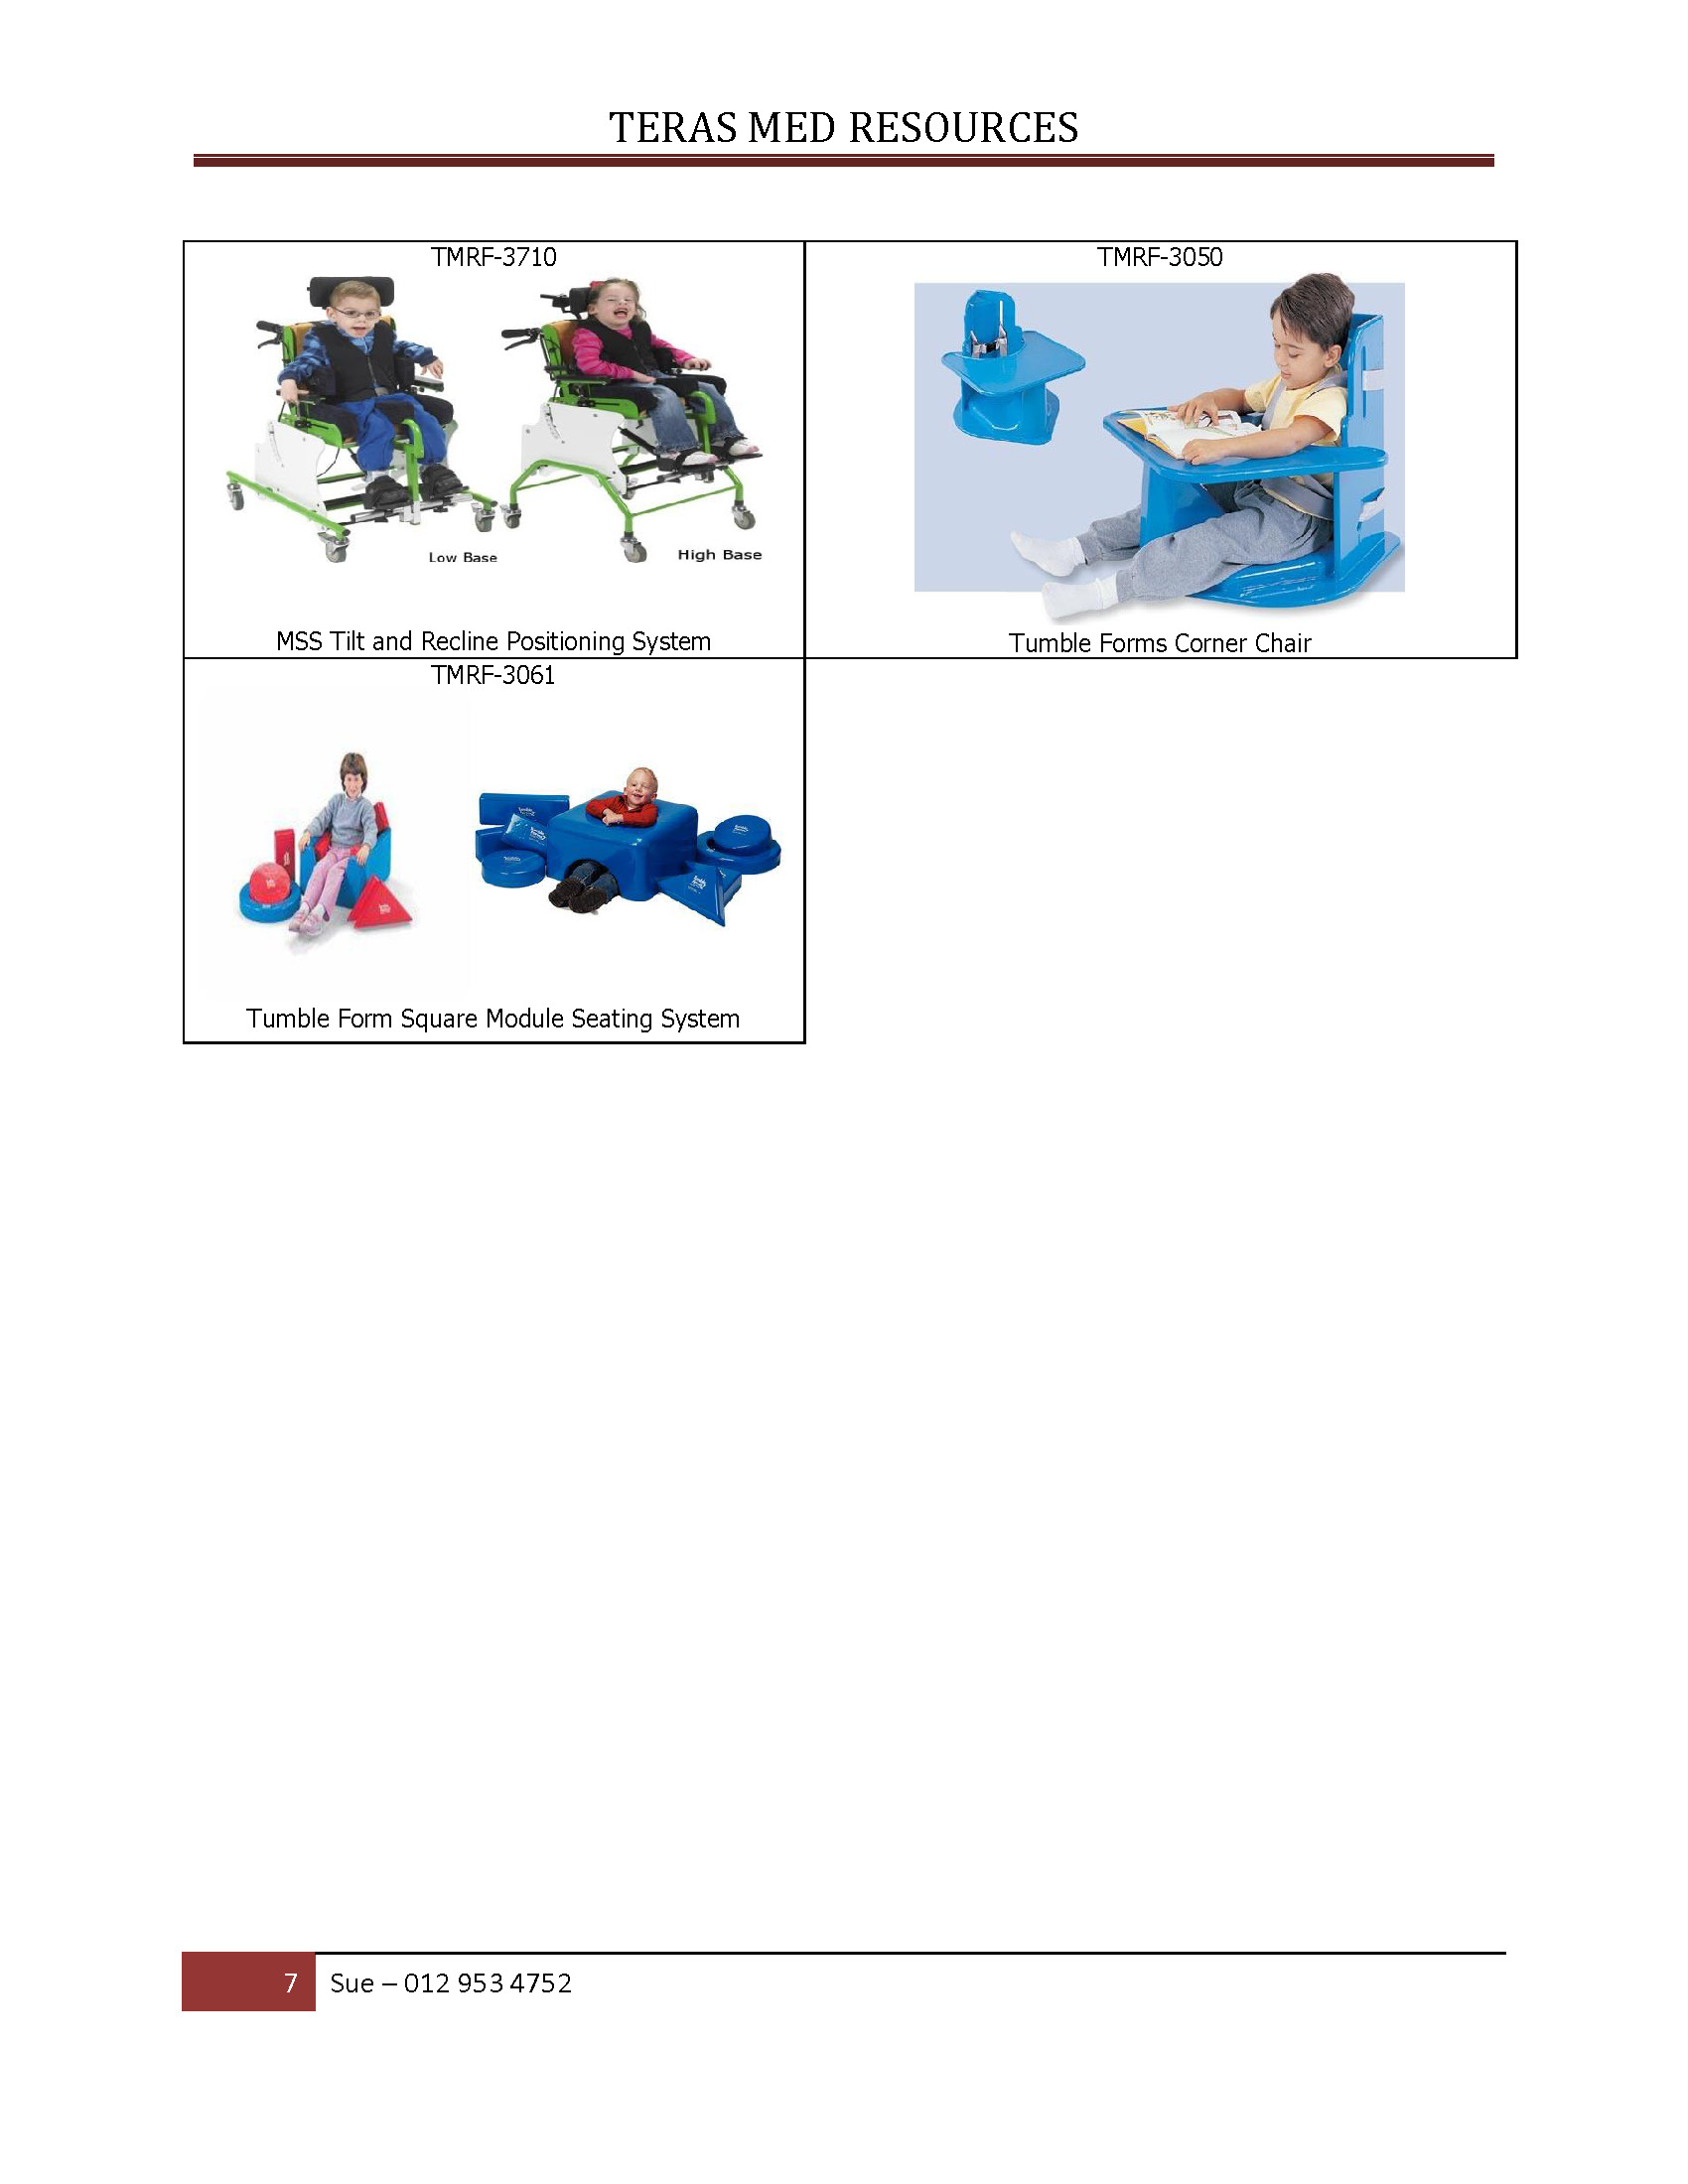 PP_Page_7